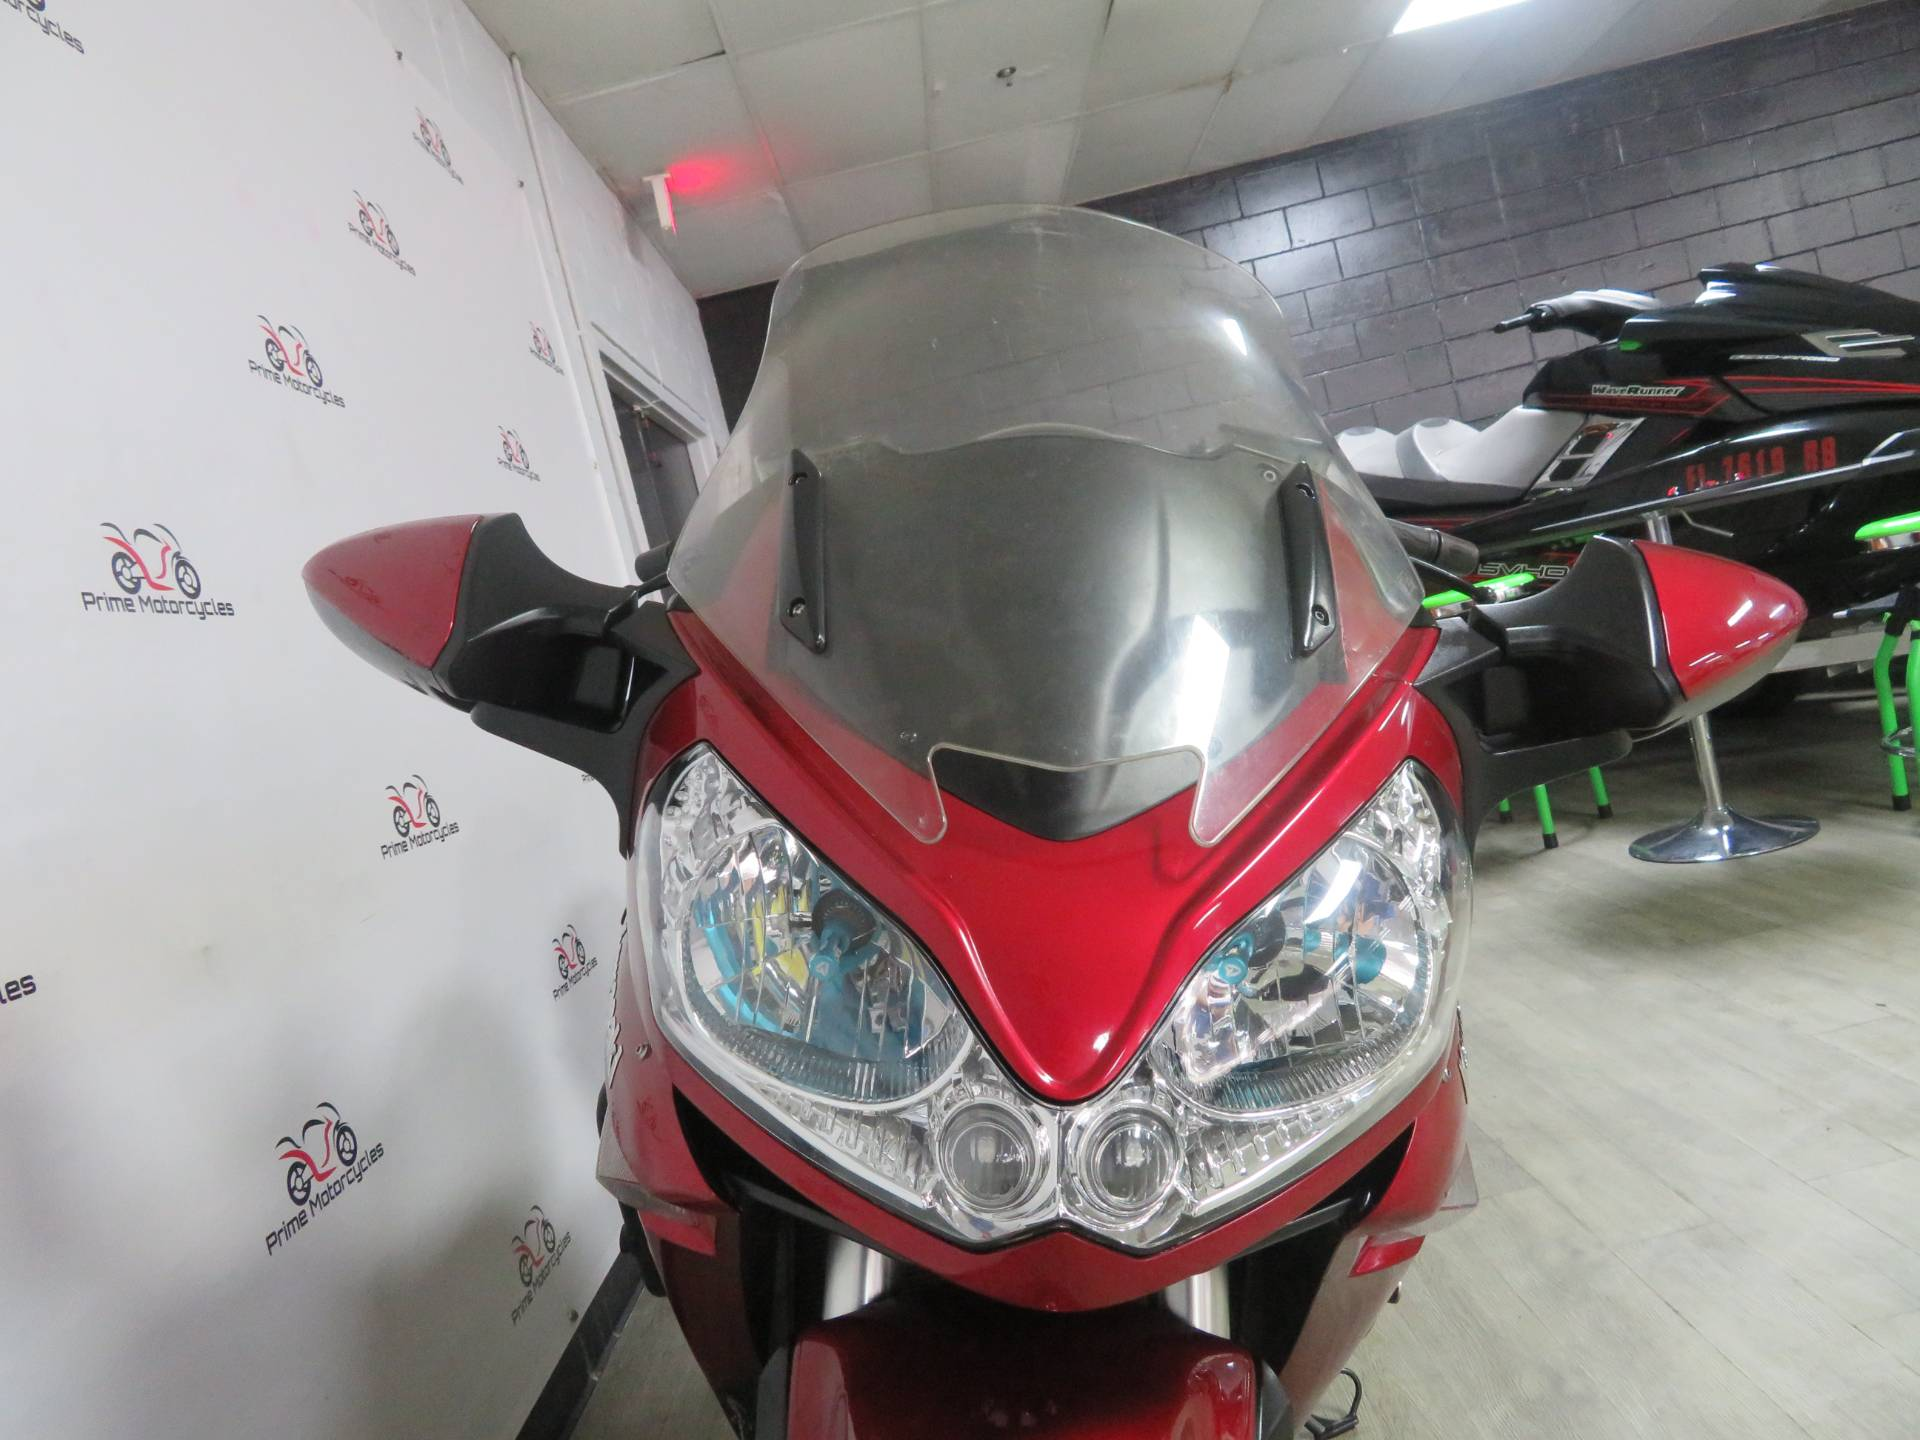 2014 Kawasaki Concours® 14 ABS in Sanford, Florida - Photo 16